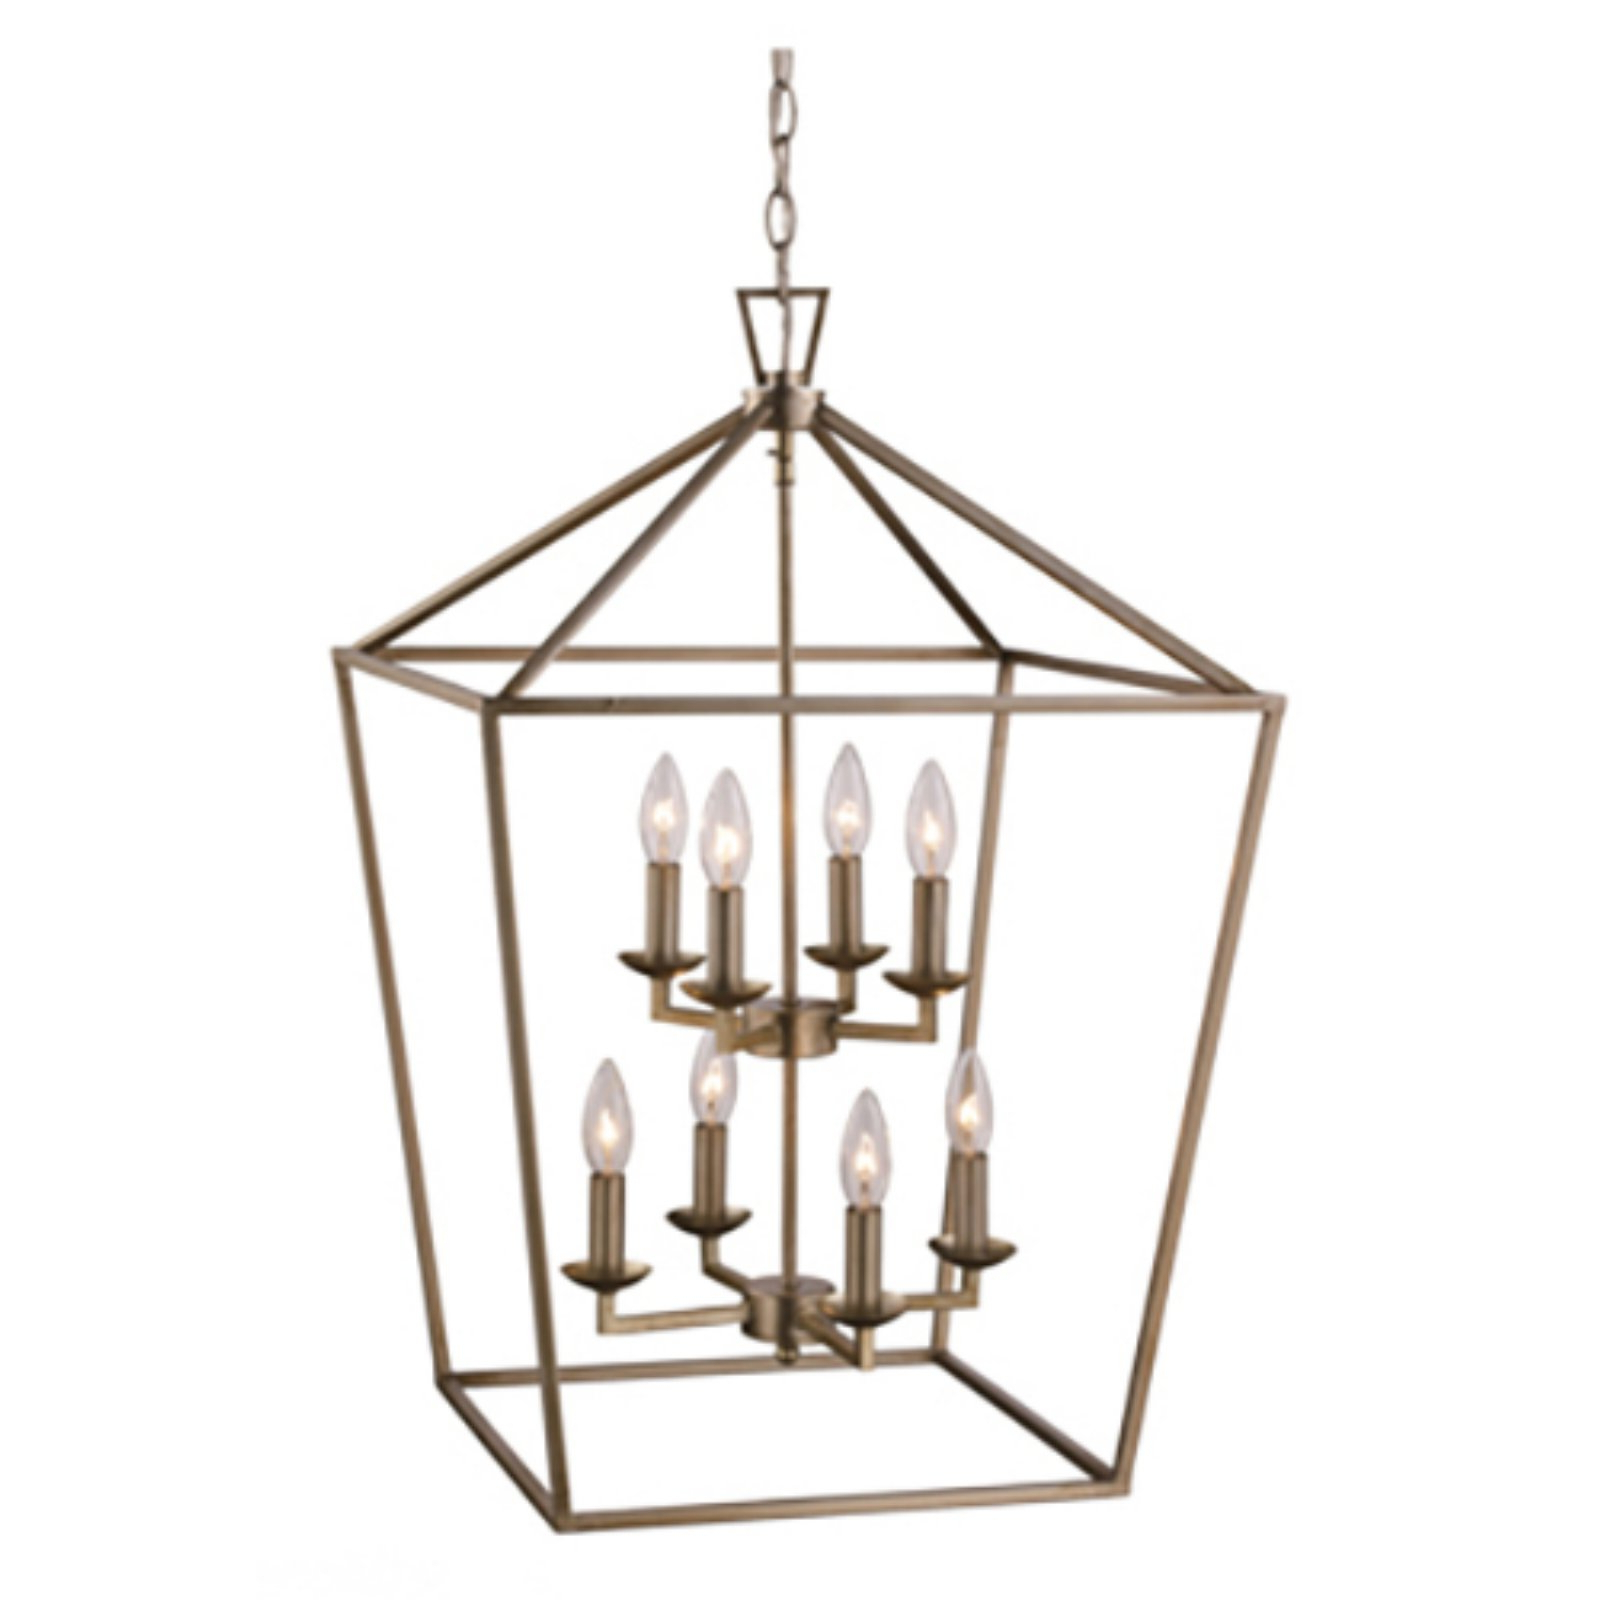 Trans Globe Lighting Lacey 10268 Pendant Light Polished Throughout Most Popular Thorne 4 Light Lantern Rectangle Pendants (View 24 of 25)